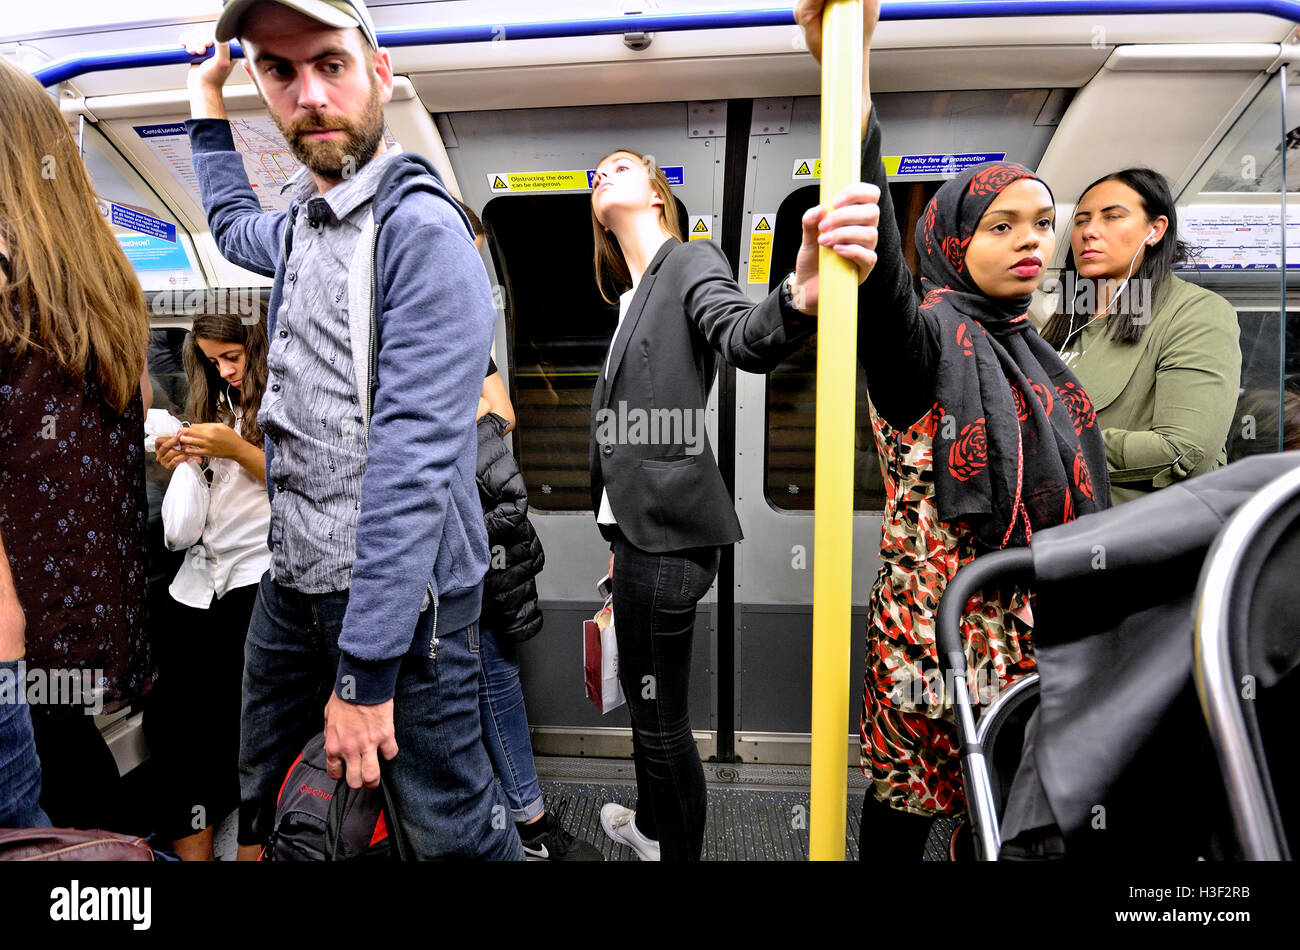 London, England,UK. People standing in an Underground tube train - Stock Image